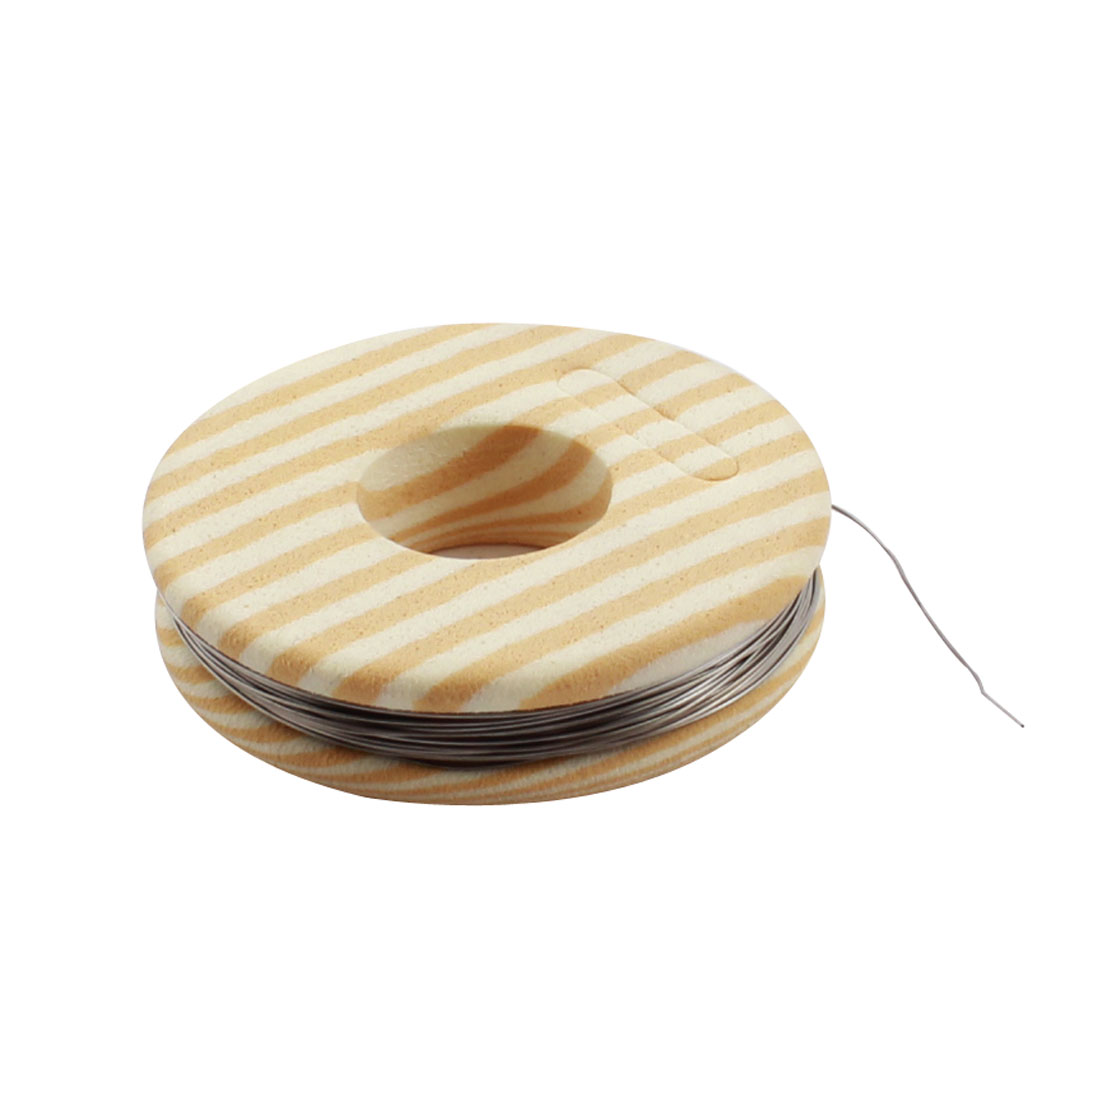 7.5M 25Ft Long 0.32mm AWG28 Gauge Cable Resistance Resistor Wire for Heating Elements